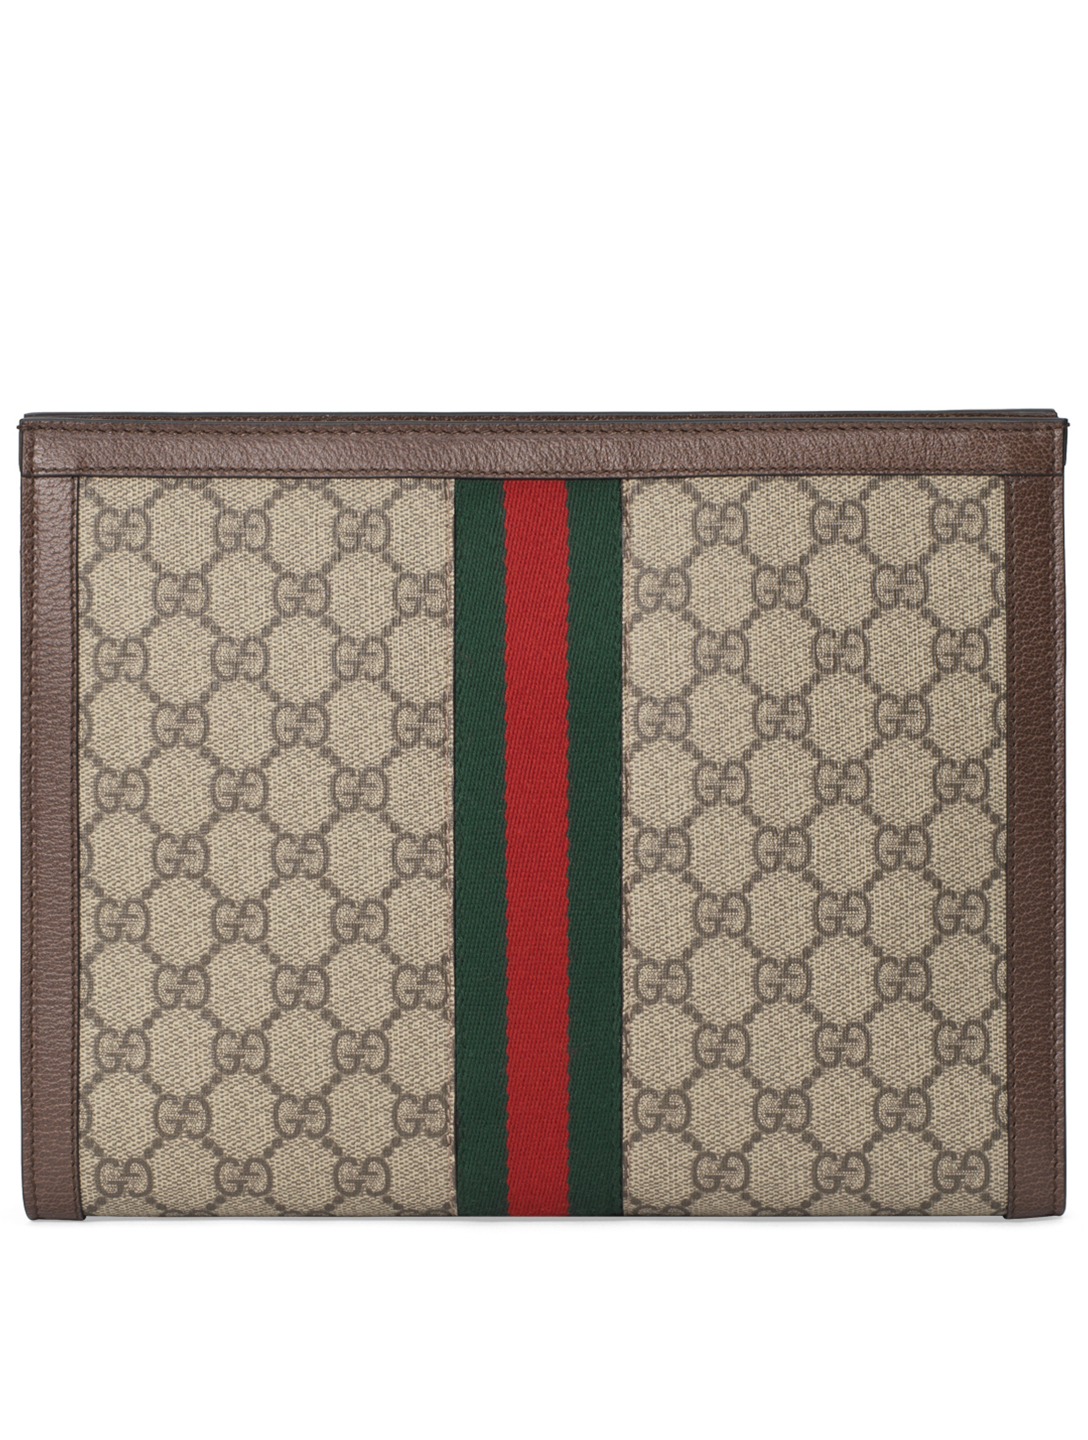 GUCCI Ophidia GG Supreme Canvas Pouch Women's Beige